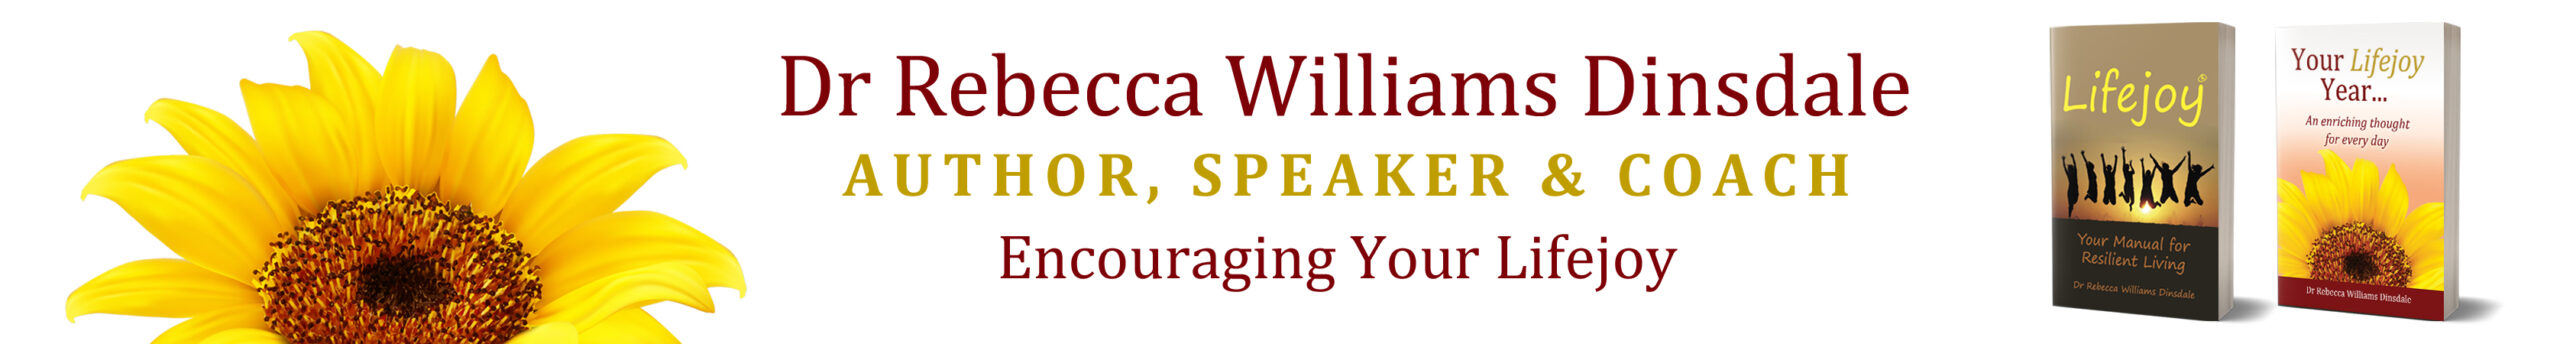 Top Banner Logo Image with Dr Rebecas name, Author, Speaker & Coach